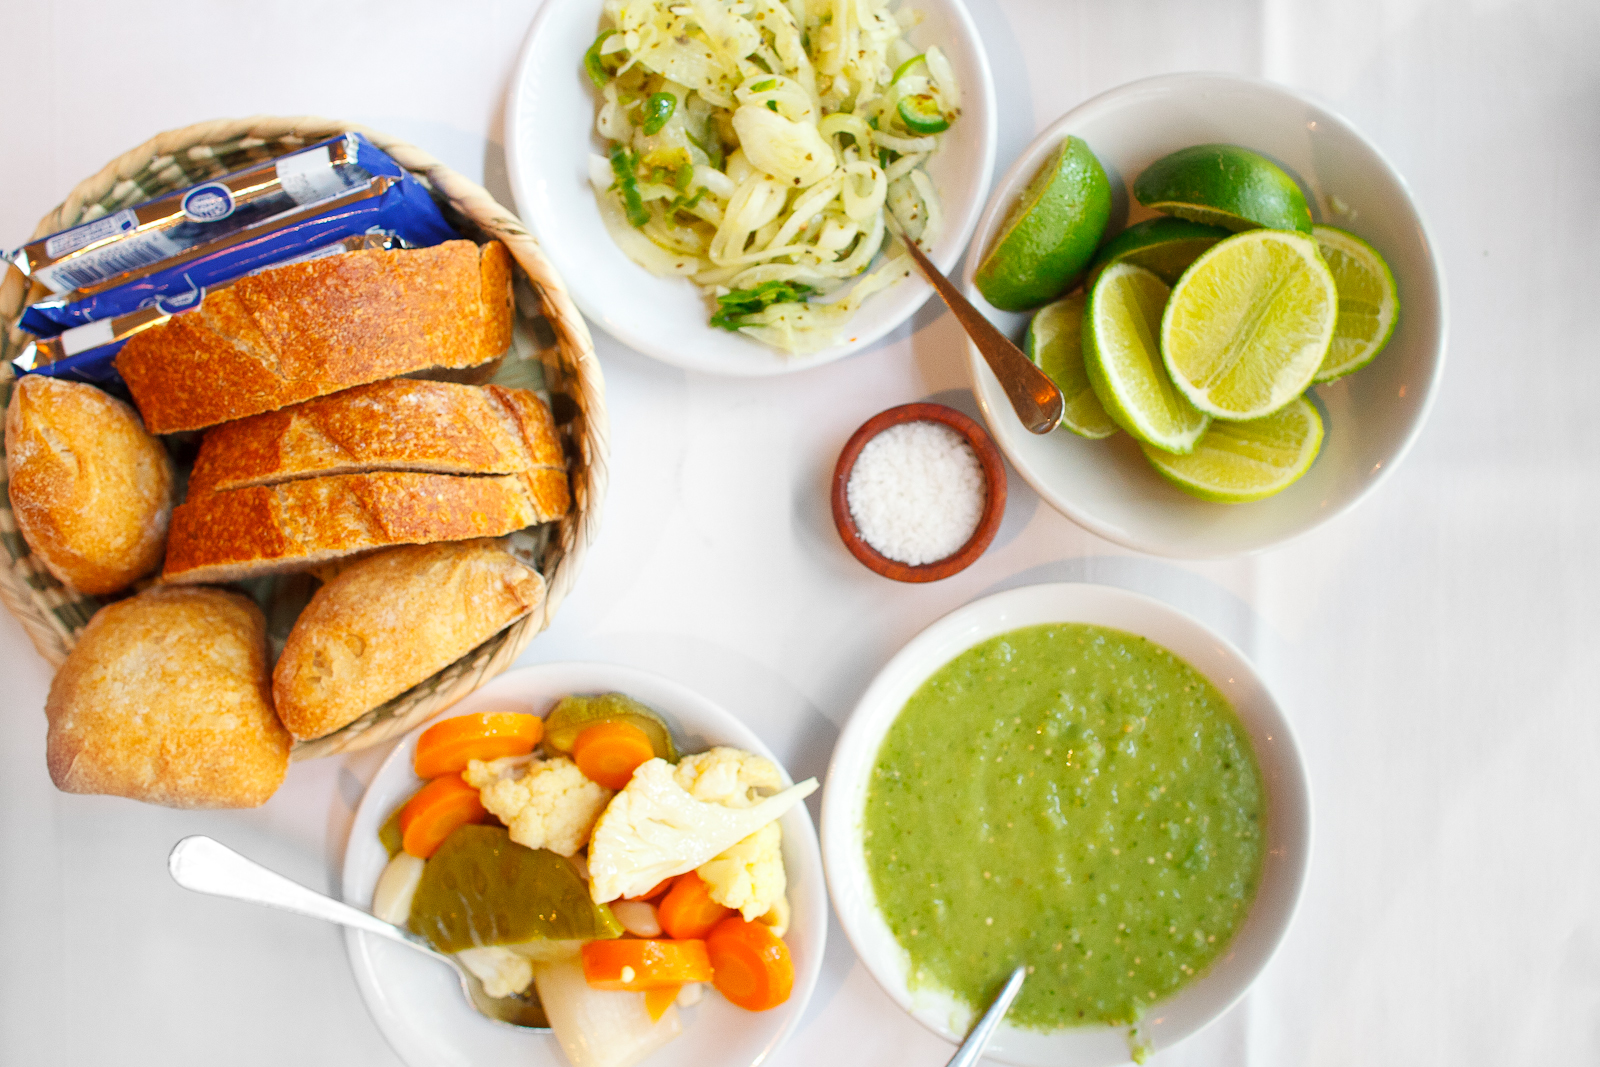 Bread, salsas, lime, and pickled vegetables